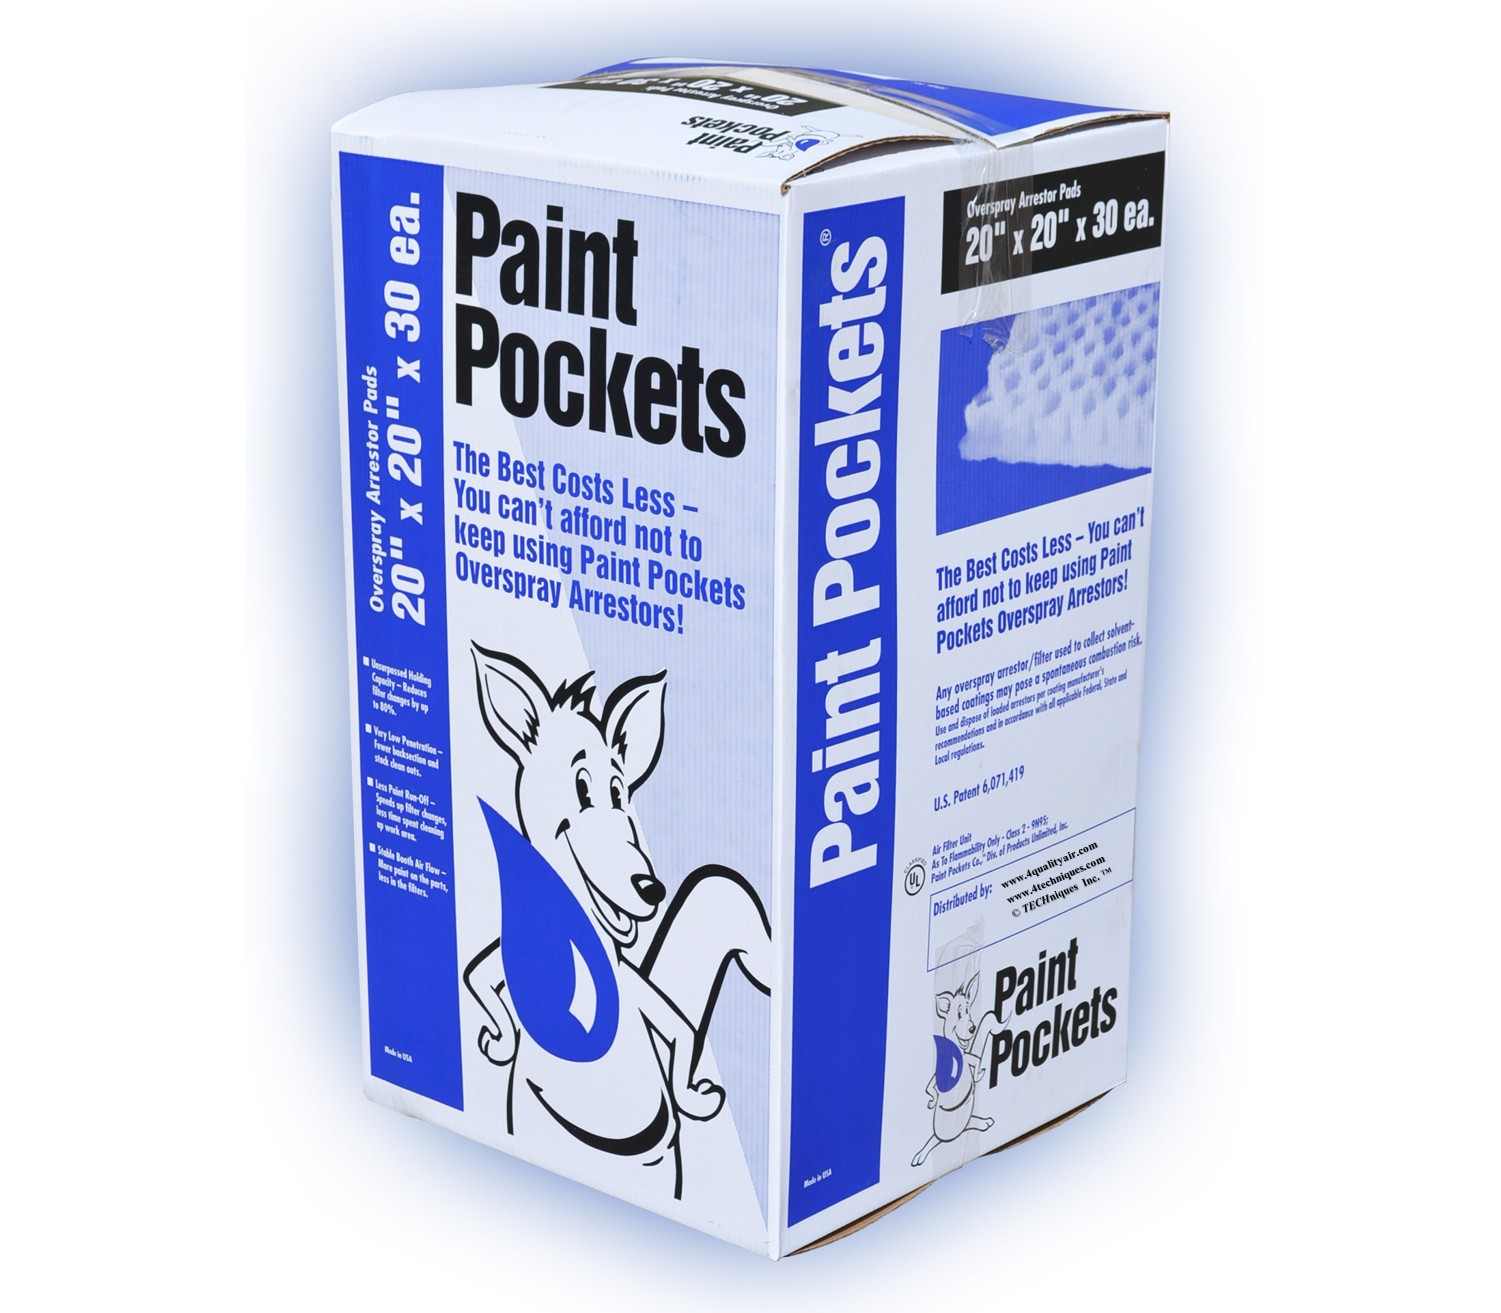 20 x 20 Paint Pockets WHITE Overspray Arrestor  30 / pkg